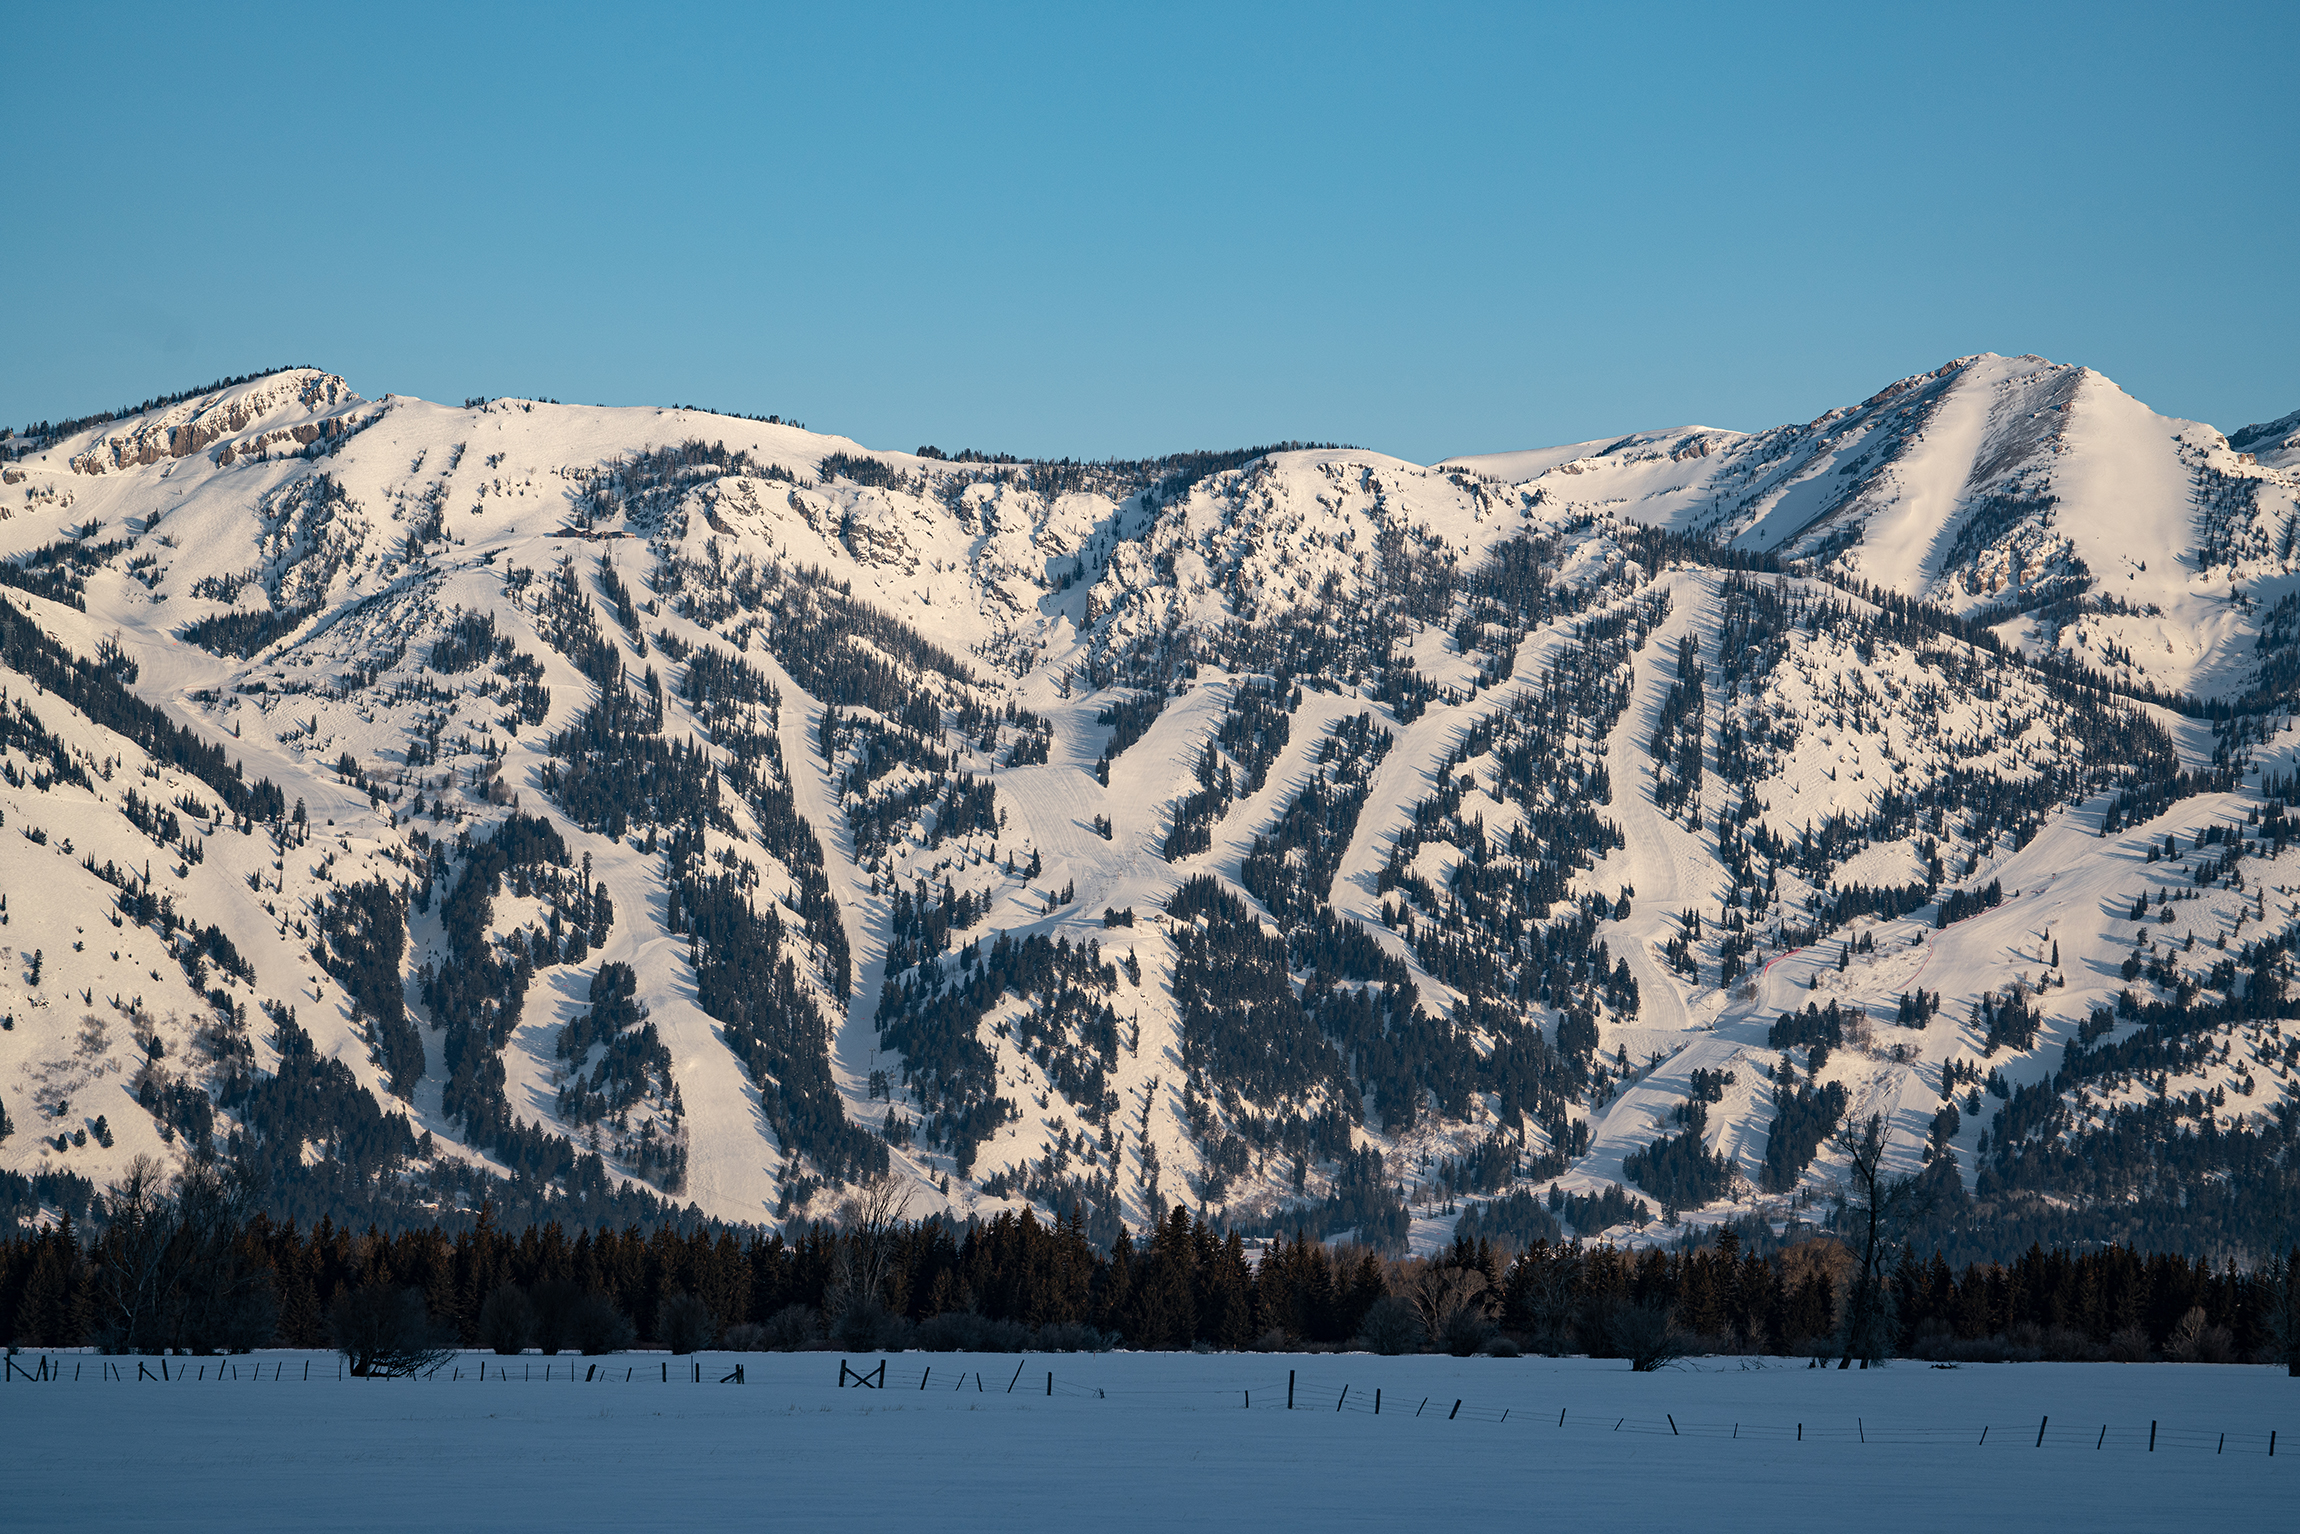 #snow, #mountain, #ski, #trails, #rendezvous, #tetonvillage, #jacksonhole, #sunrise, #cold